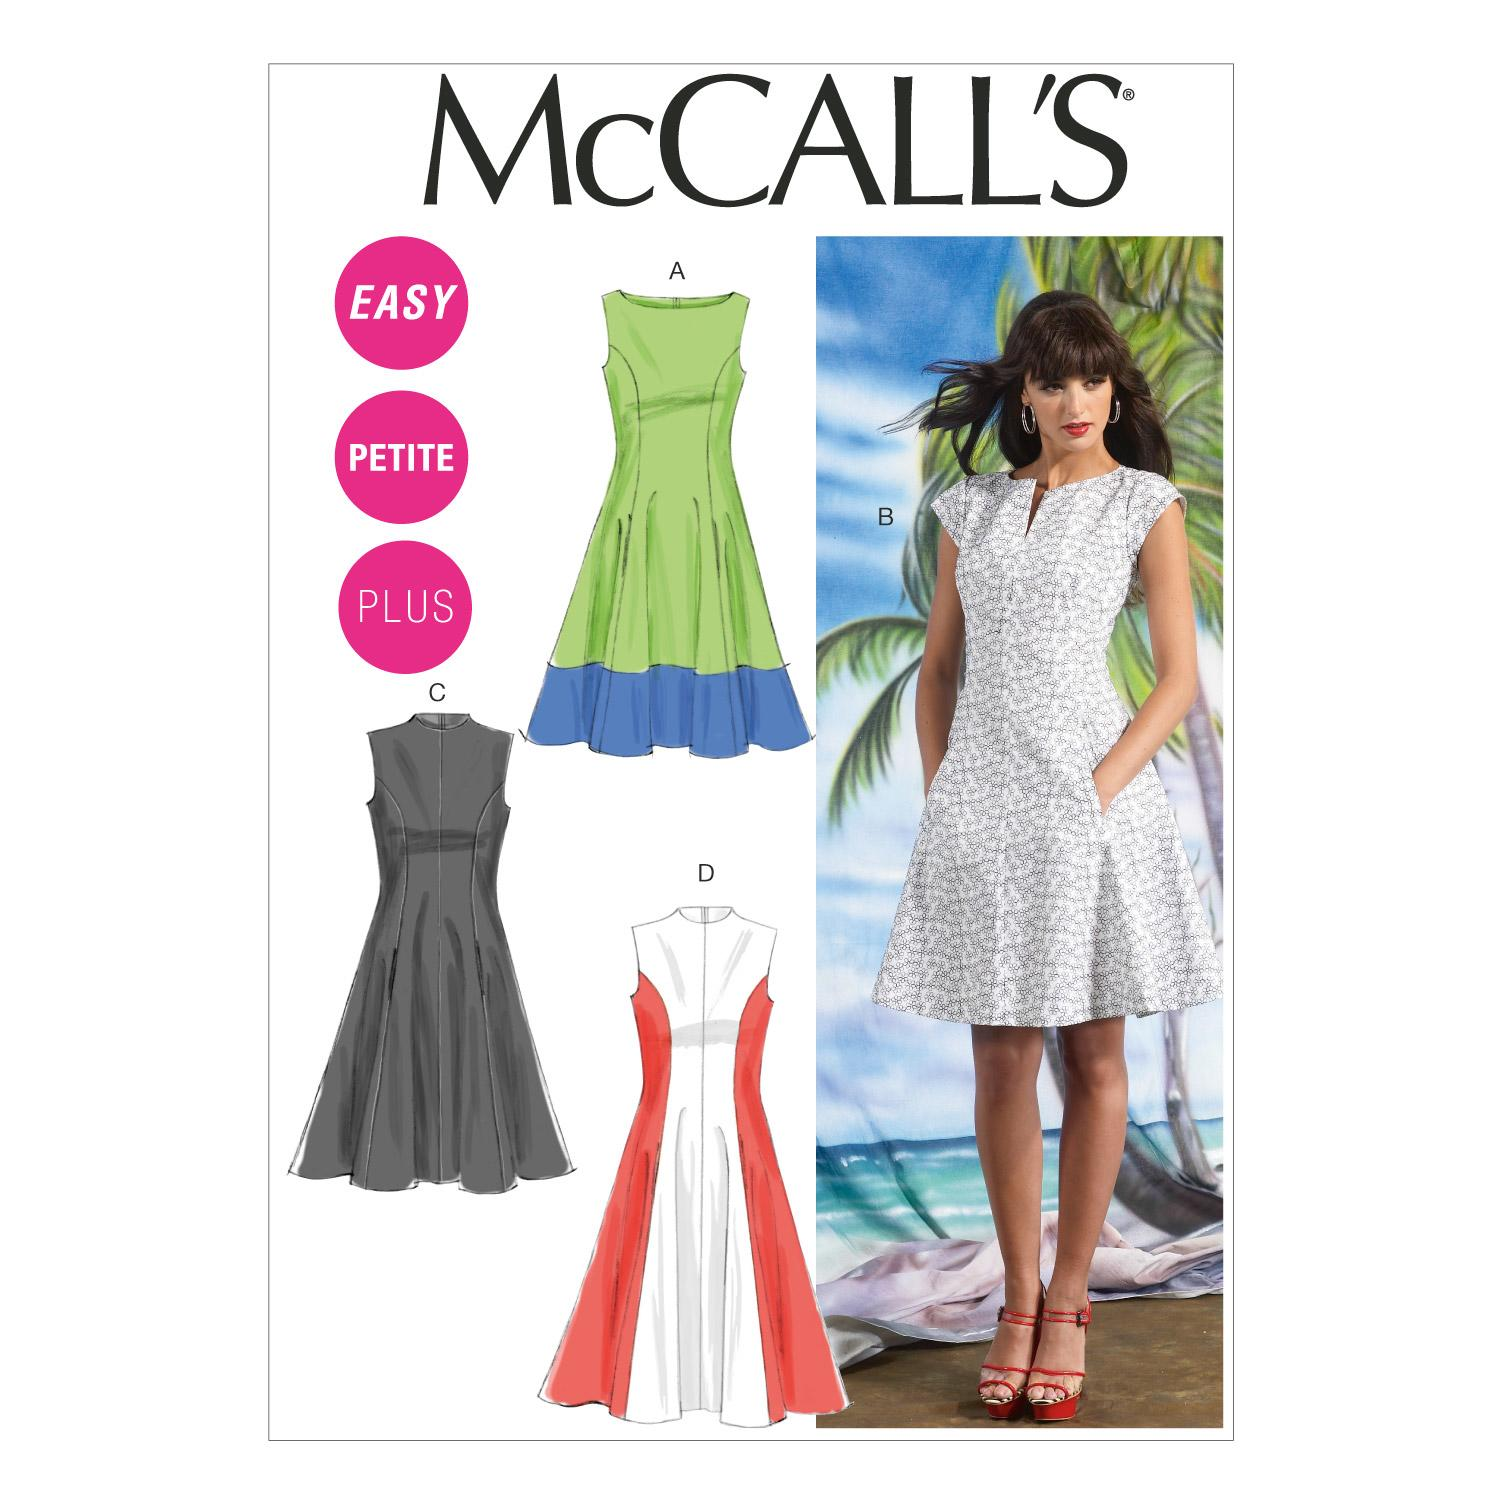 McCalls M6741 Dresses, Misses, Misses/Women/Girls, Plus Size